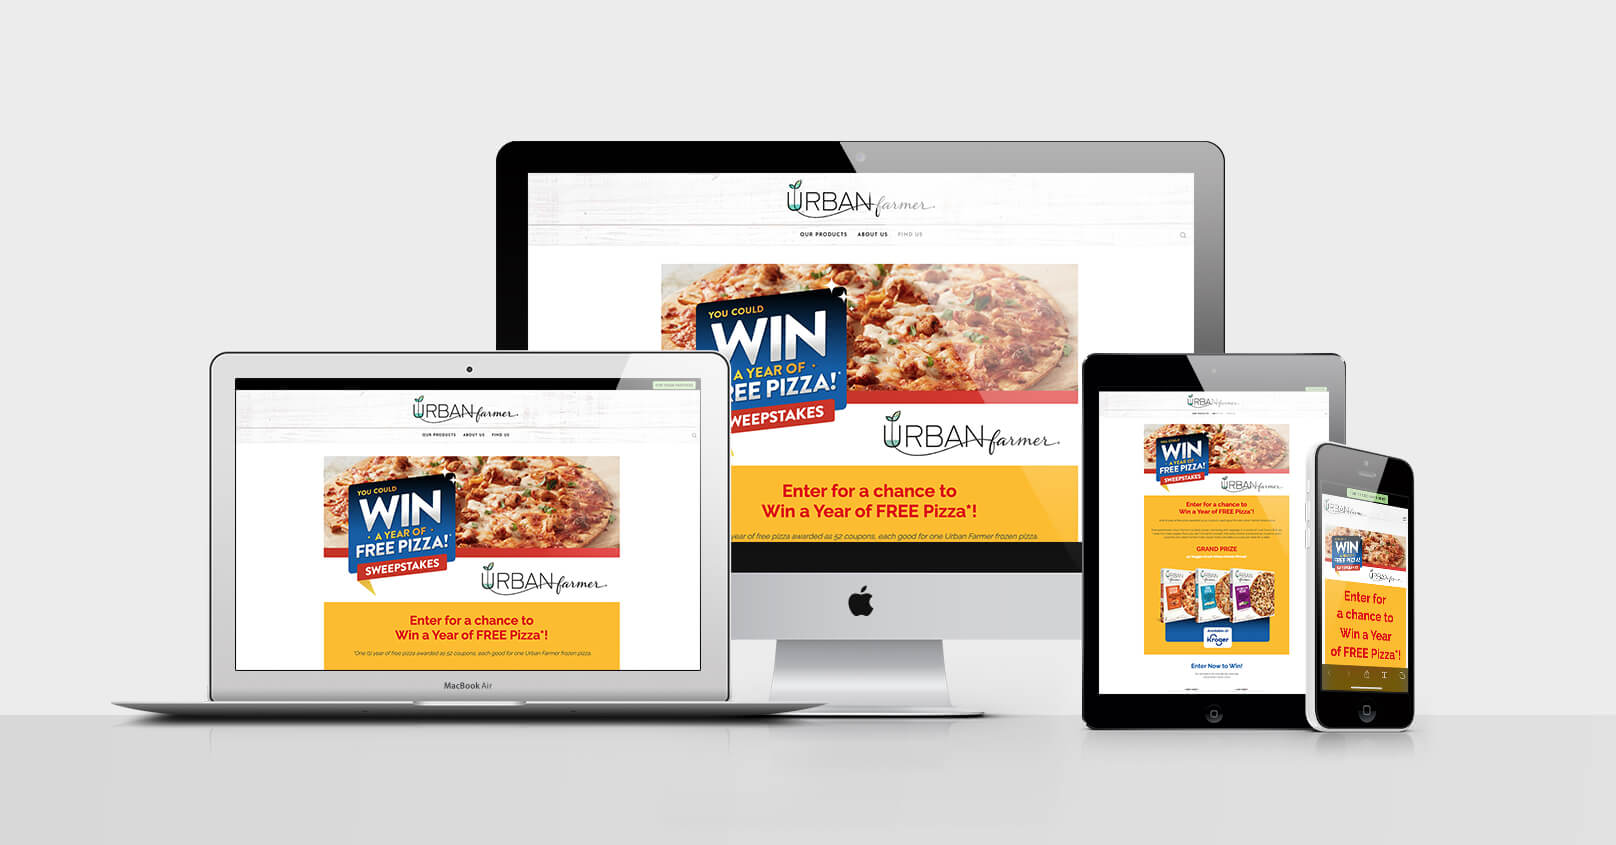 Win Free Pizza - CPG Food Promotion for Covid